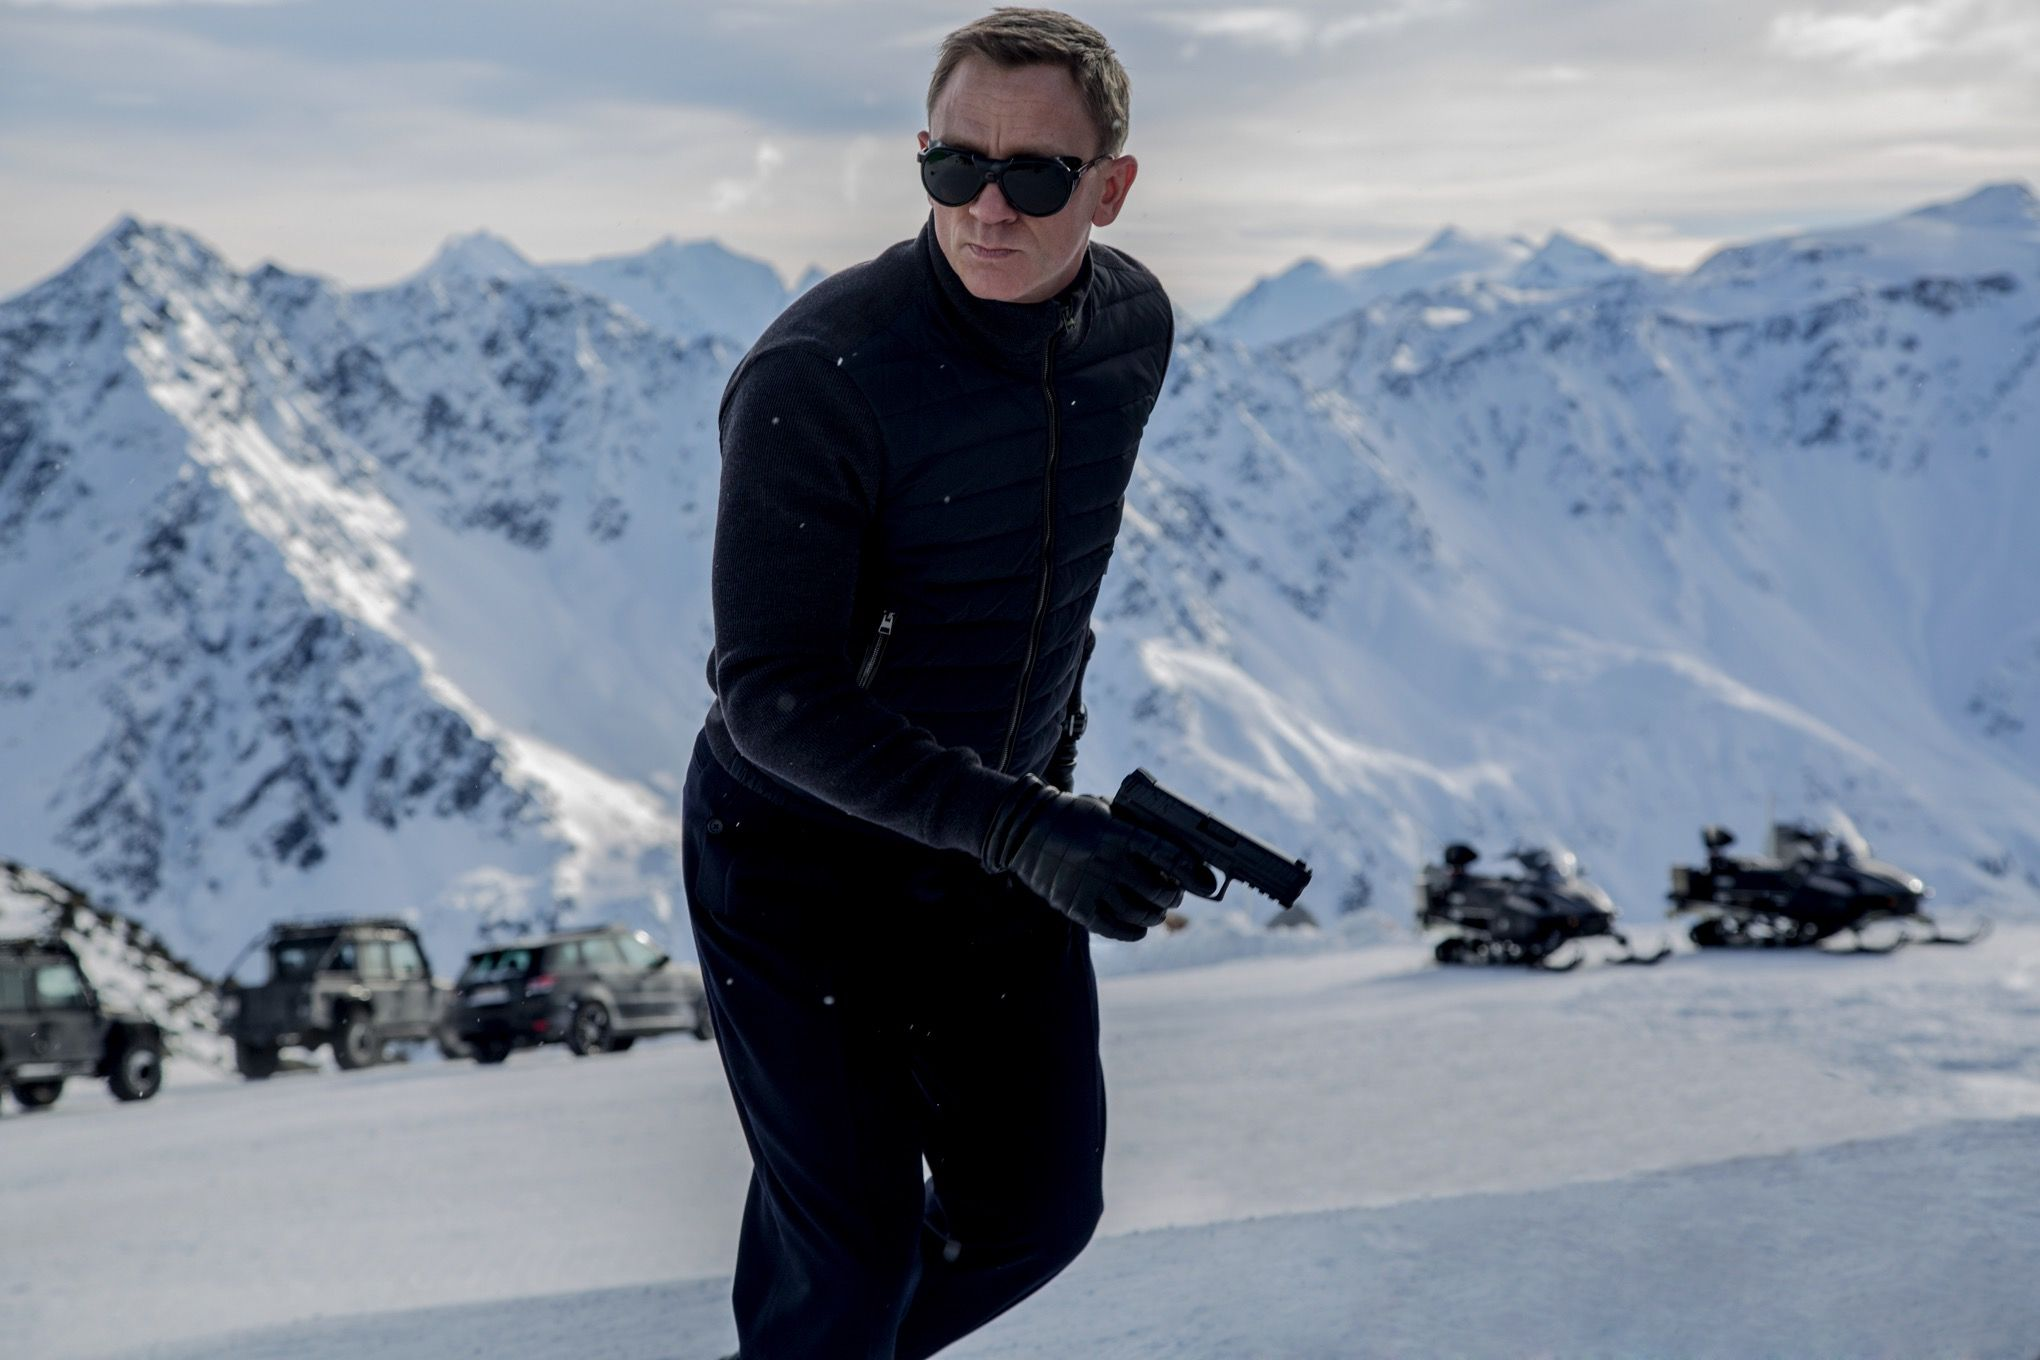 James-Bond-Spectre-HK-VP9